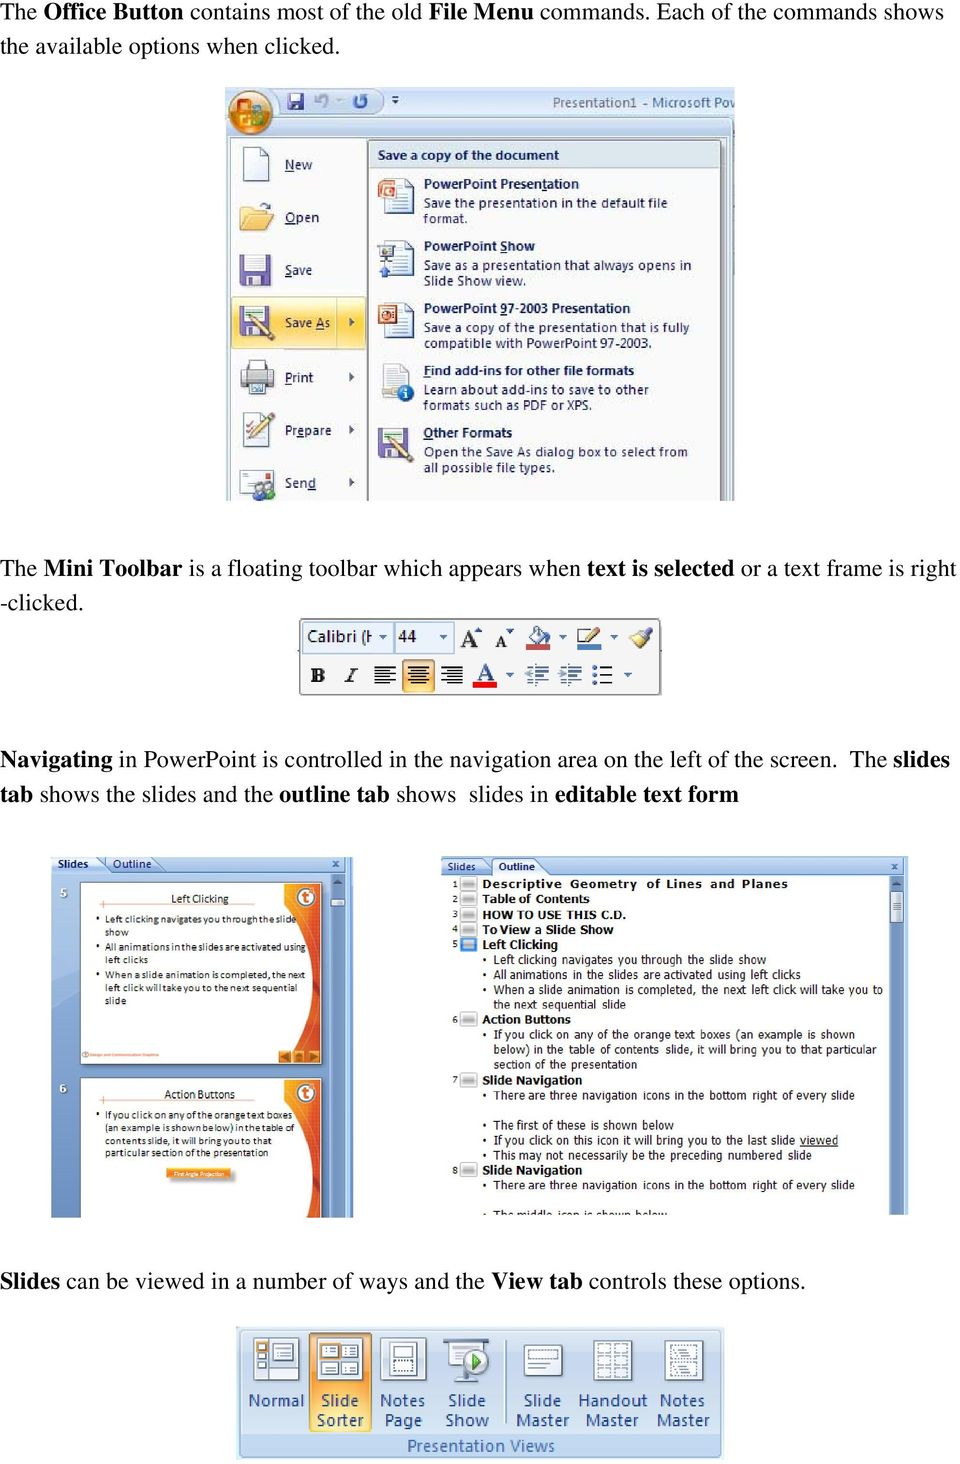 The Mini Toolbar is a floating toolbar which appears when text is selected or a text frame is right -clicked.